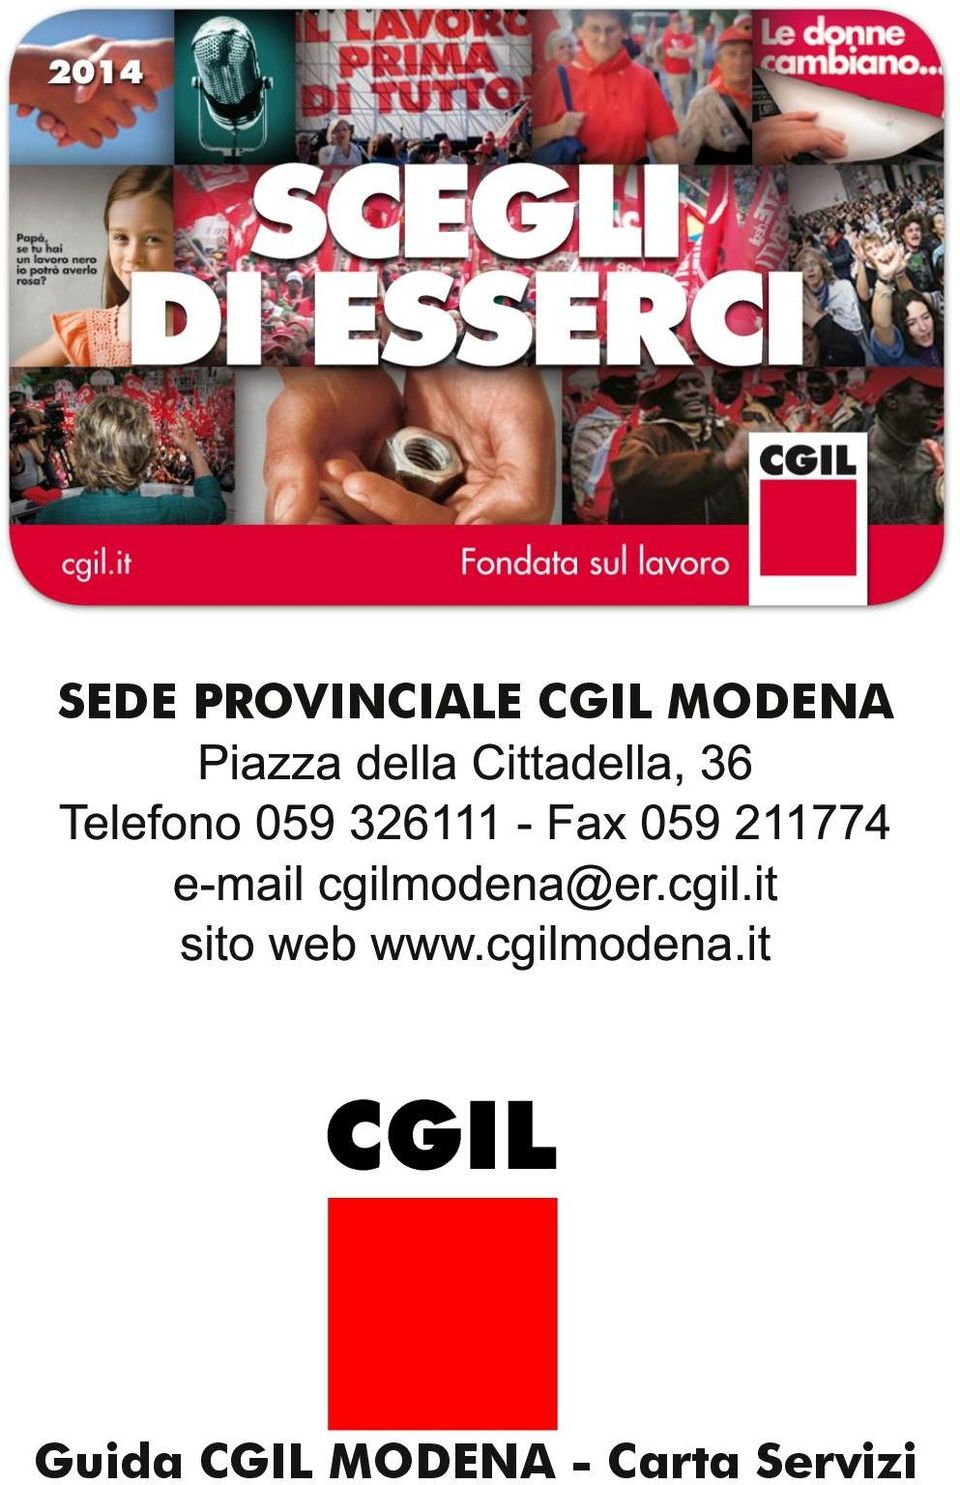 211 774 e-mail cgilmodena@er.cgil.it sito web www.